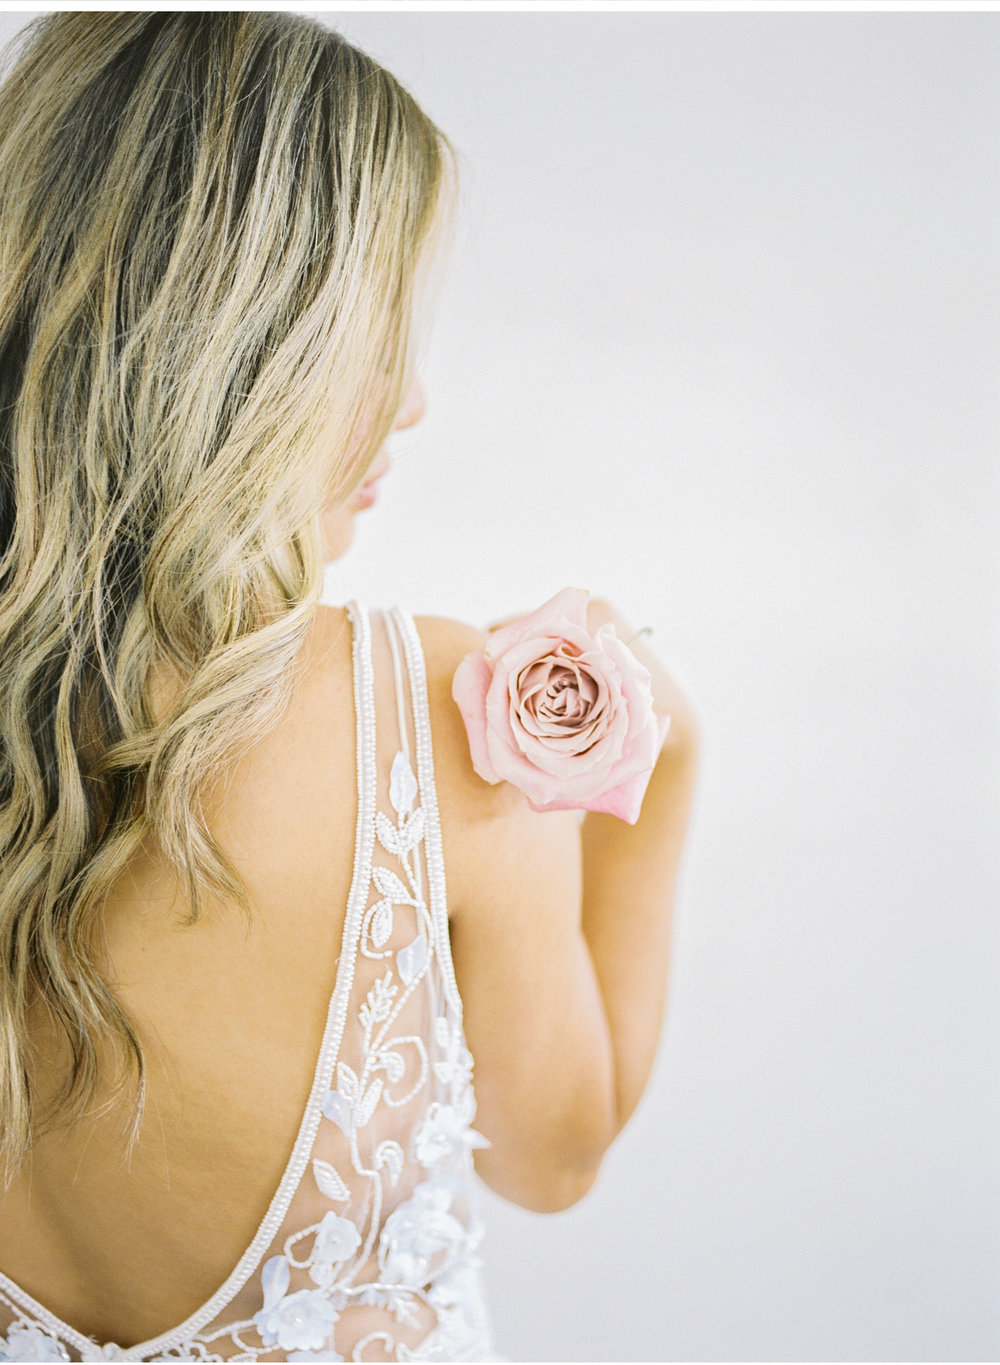 Malibu-Wedding-Photographer-Natalie-Schutt-Photography-Inspired-by-This_06.jpg